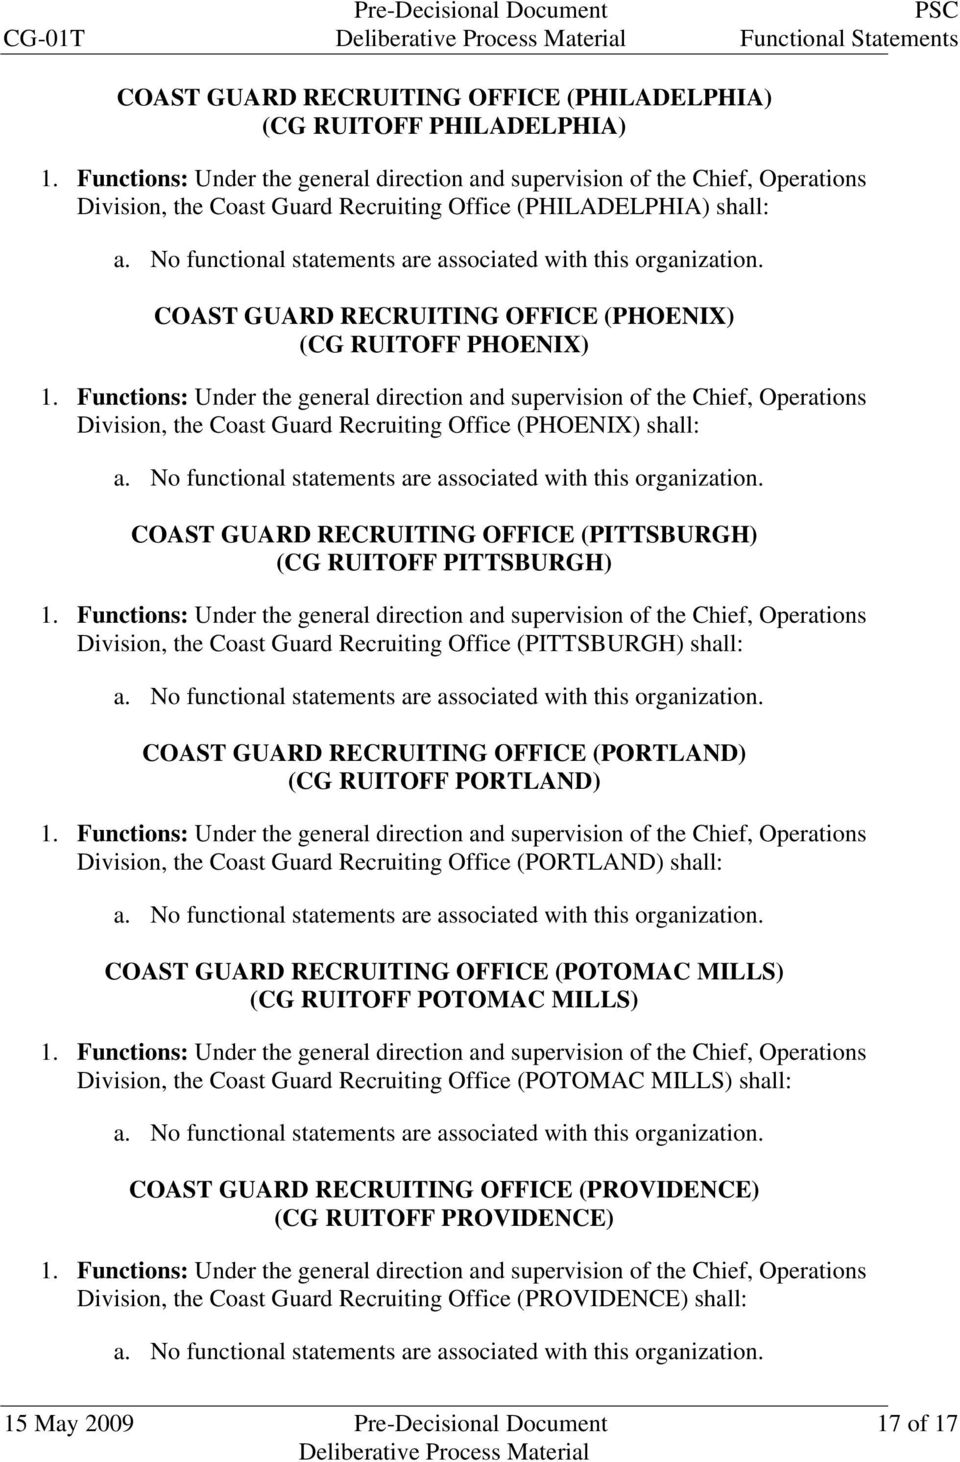 Office (PITTSBURGH) shall: COAST GUARD RECRUITING OFFICE (PORTLAND) (CG RUITOFF PORTLAND) Division, the Coast Guard Recruiting Office (PORTLAND) shall: COAST GUARD RECRUITING OFFICE (POTOMAC MILLS)